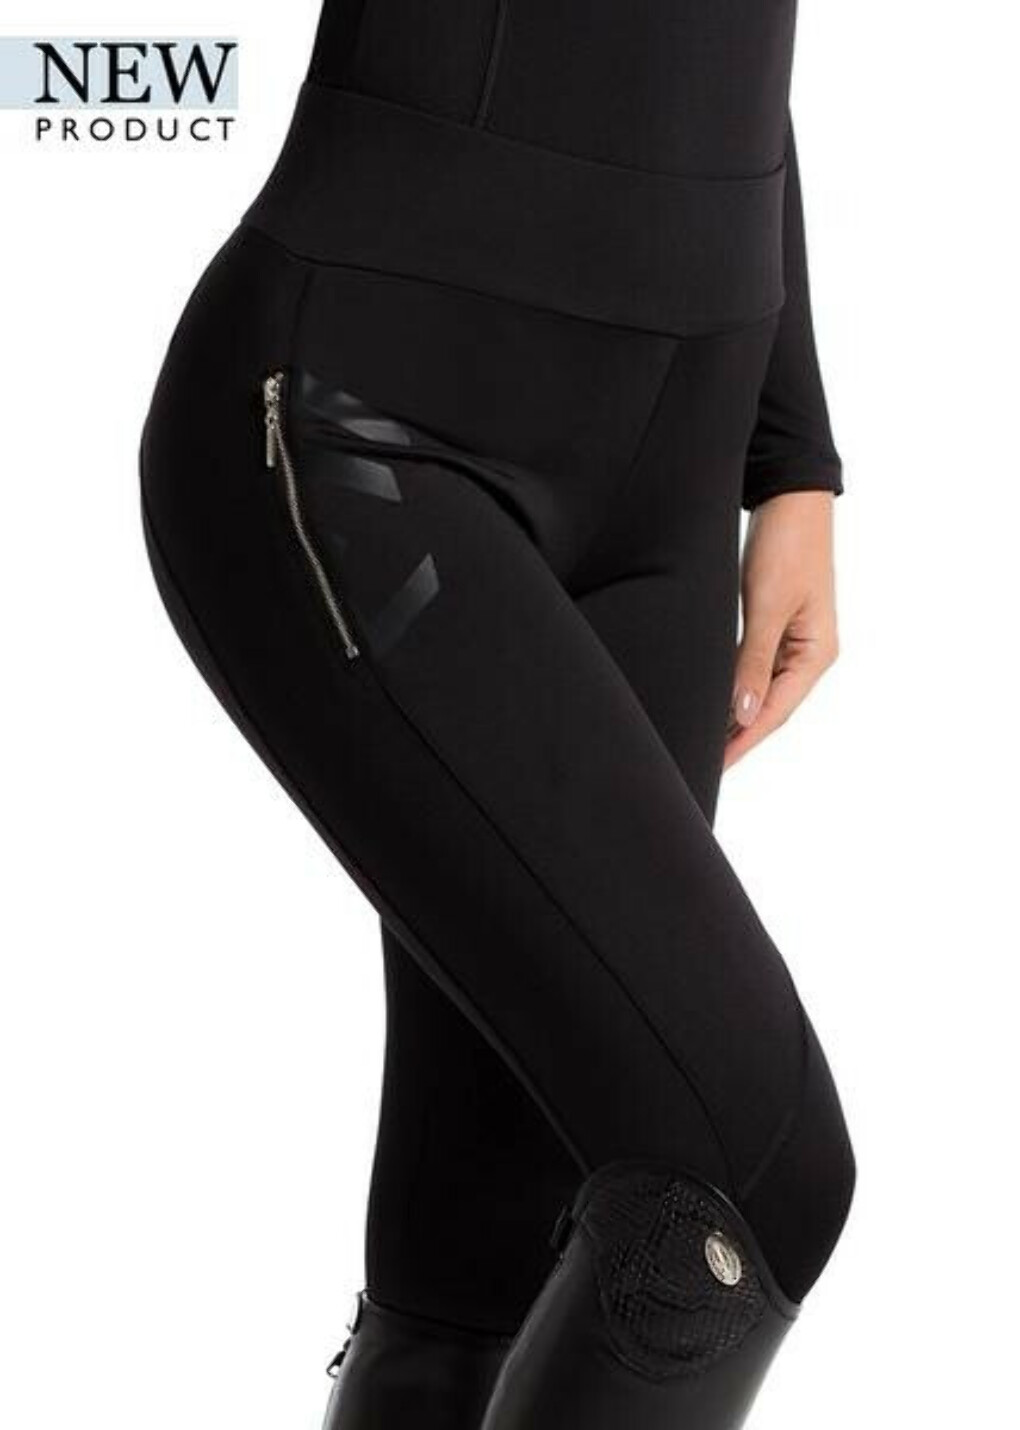 SS18 Black Technical Stretch Leggings